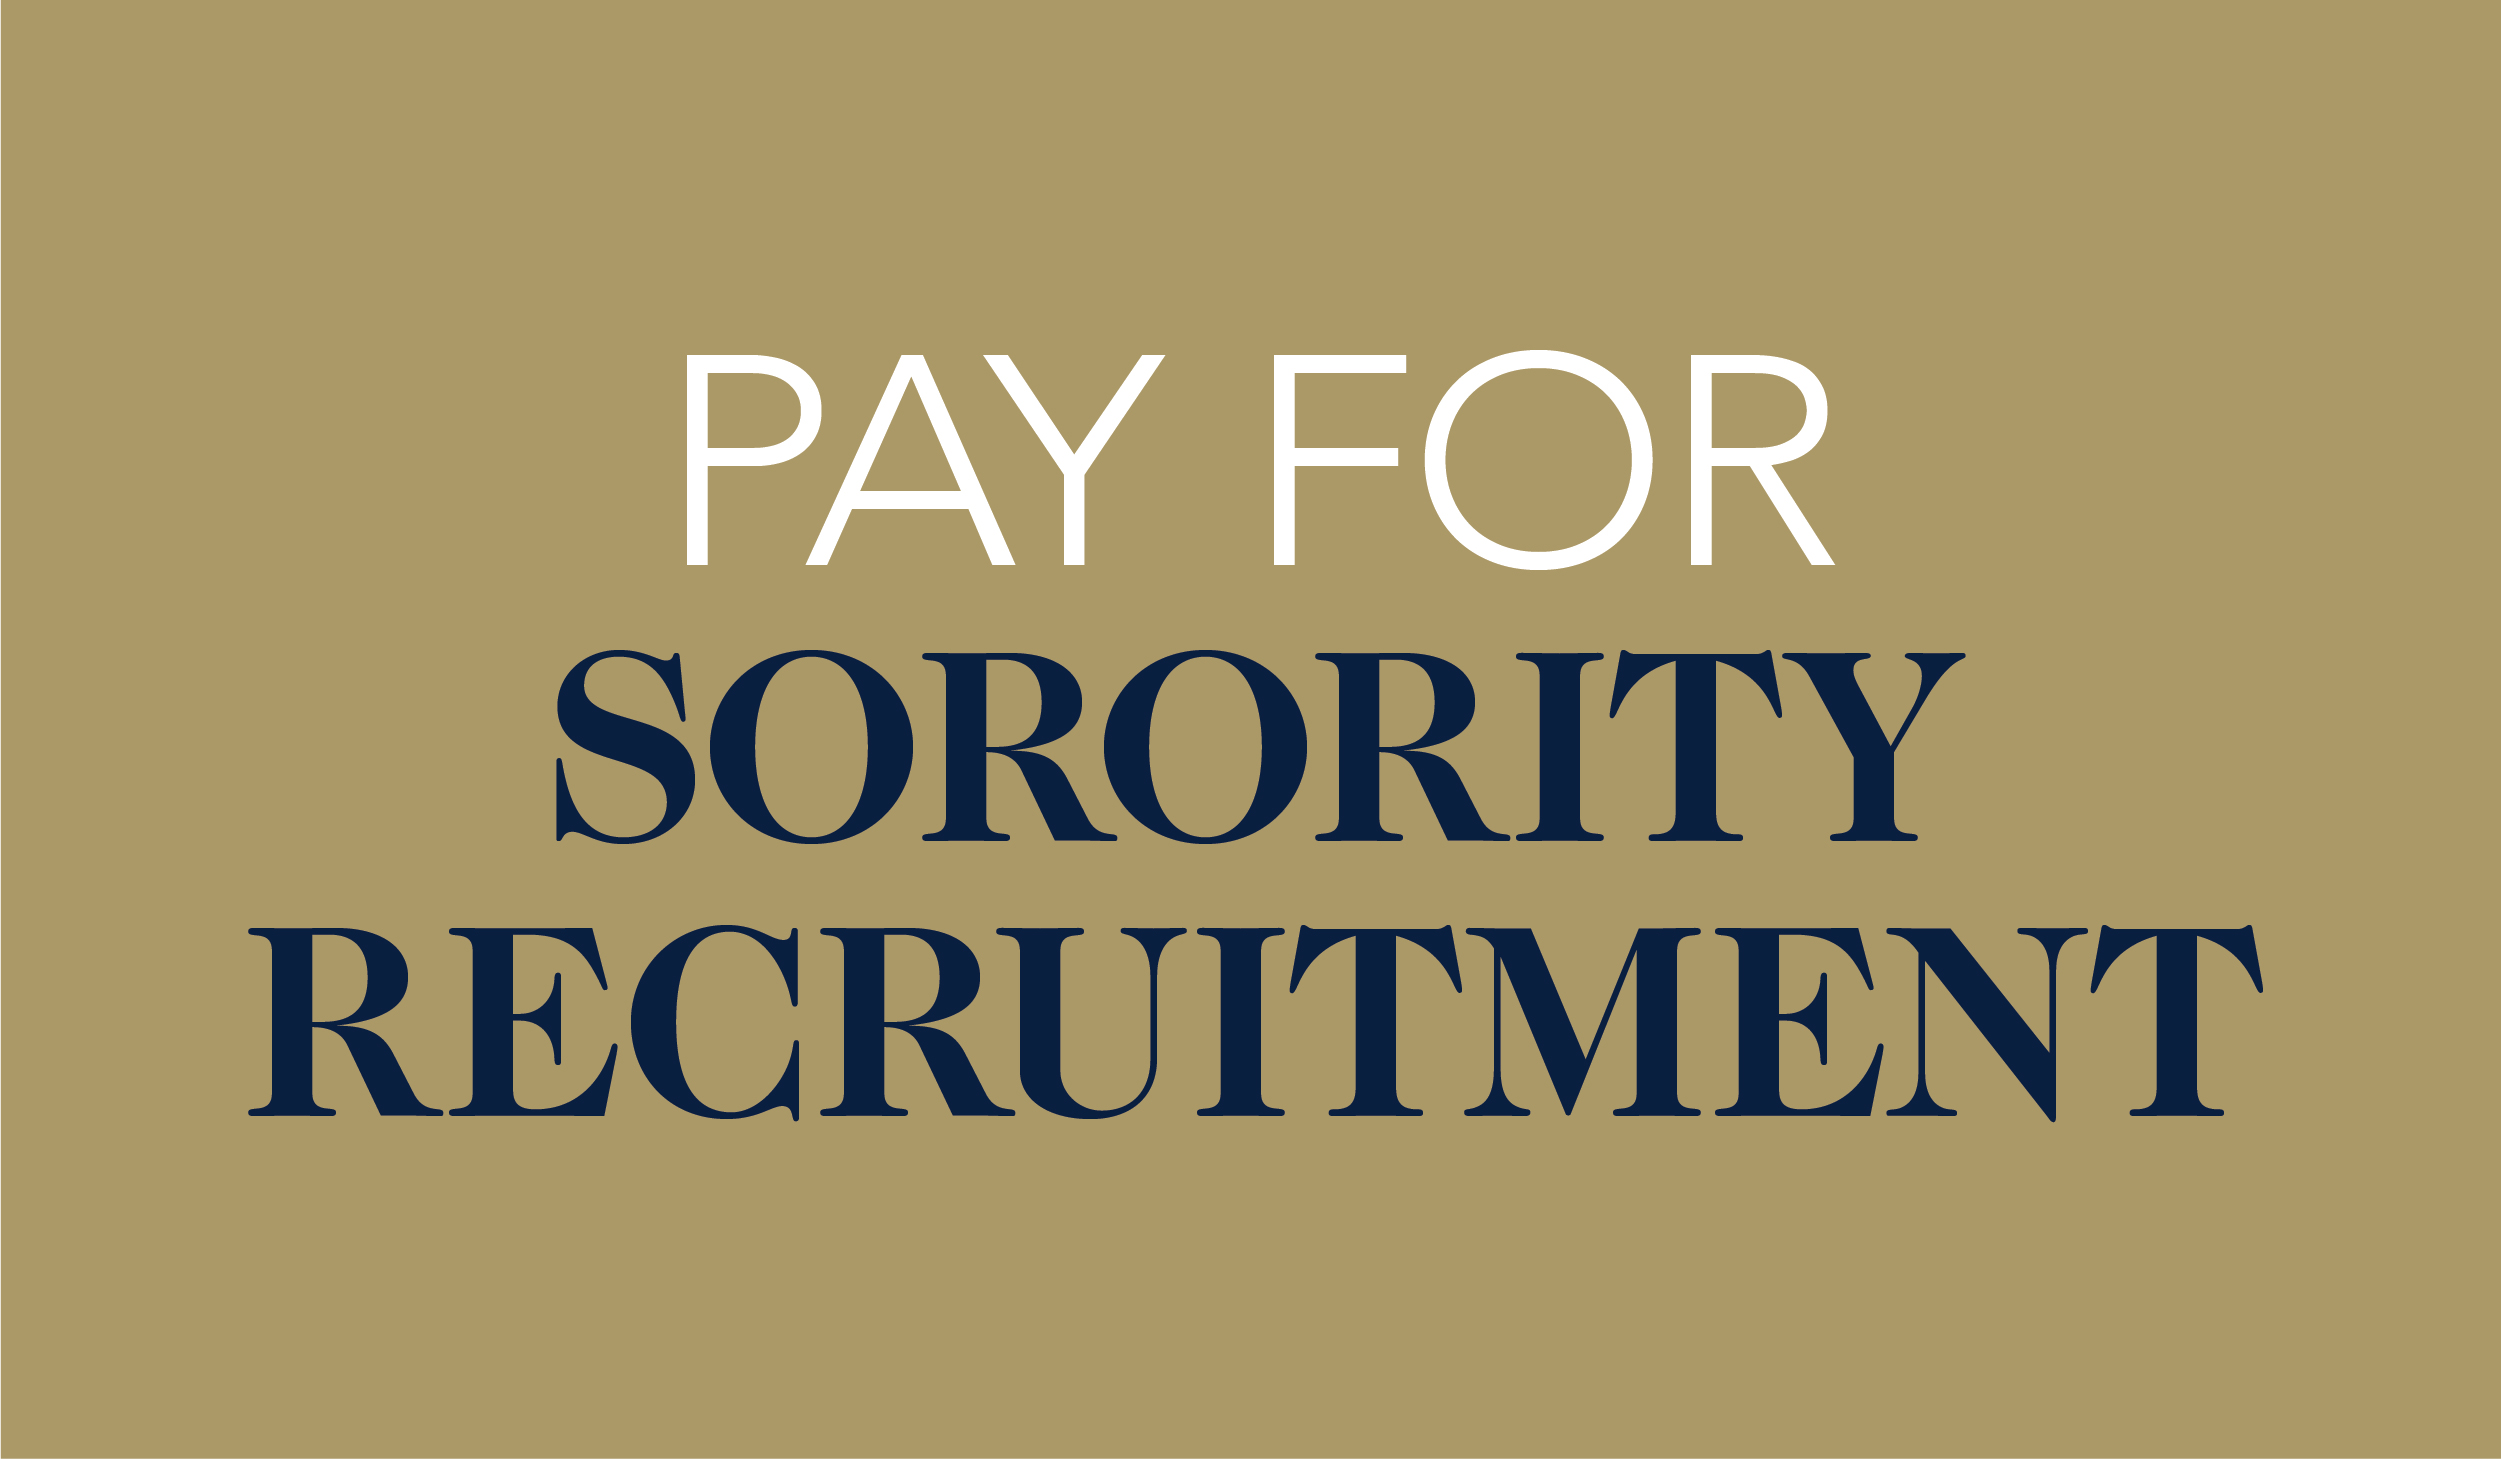 Pay For Sorority Recruitment